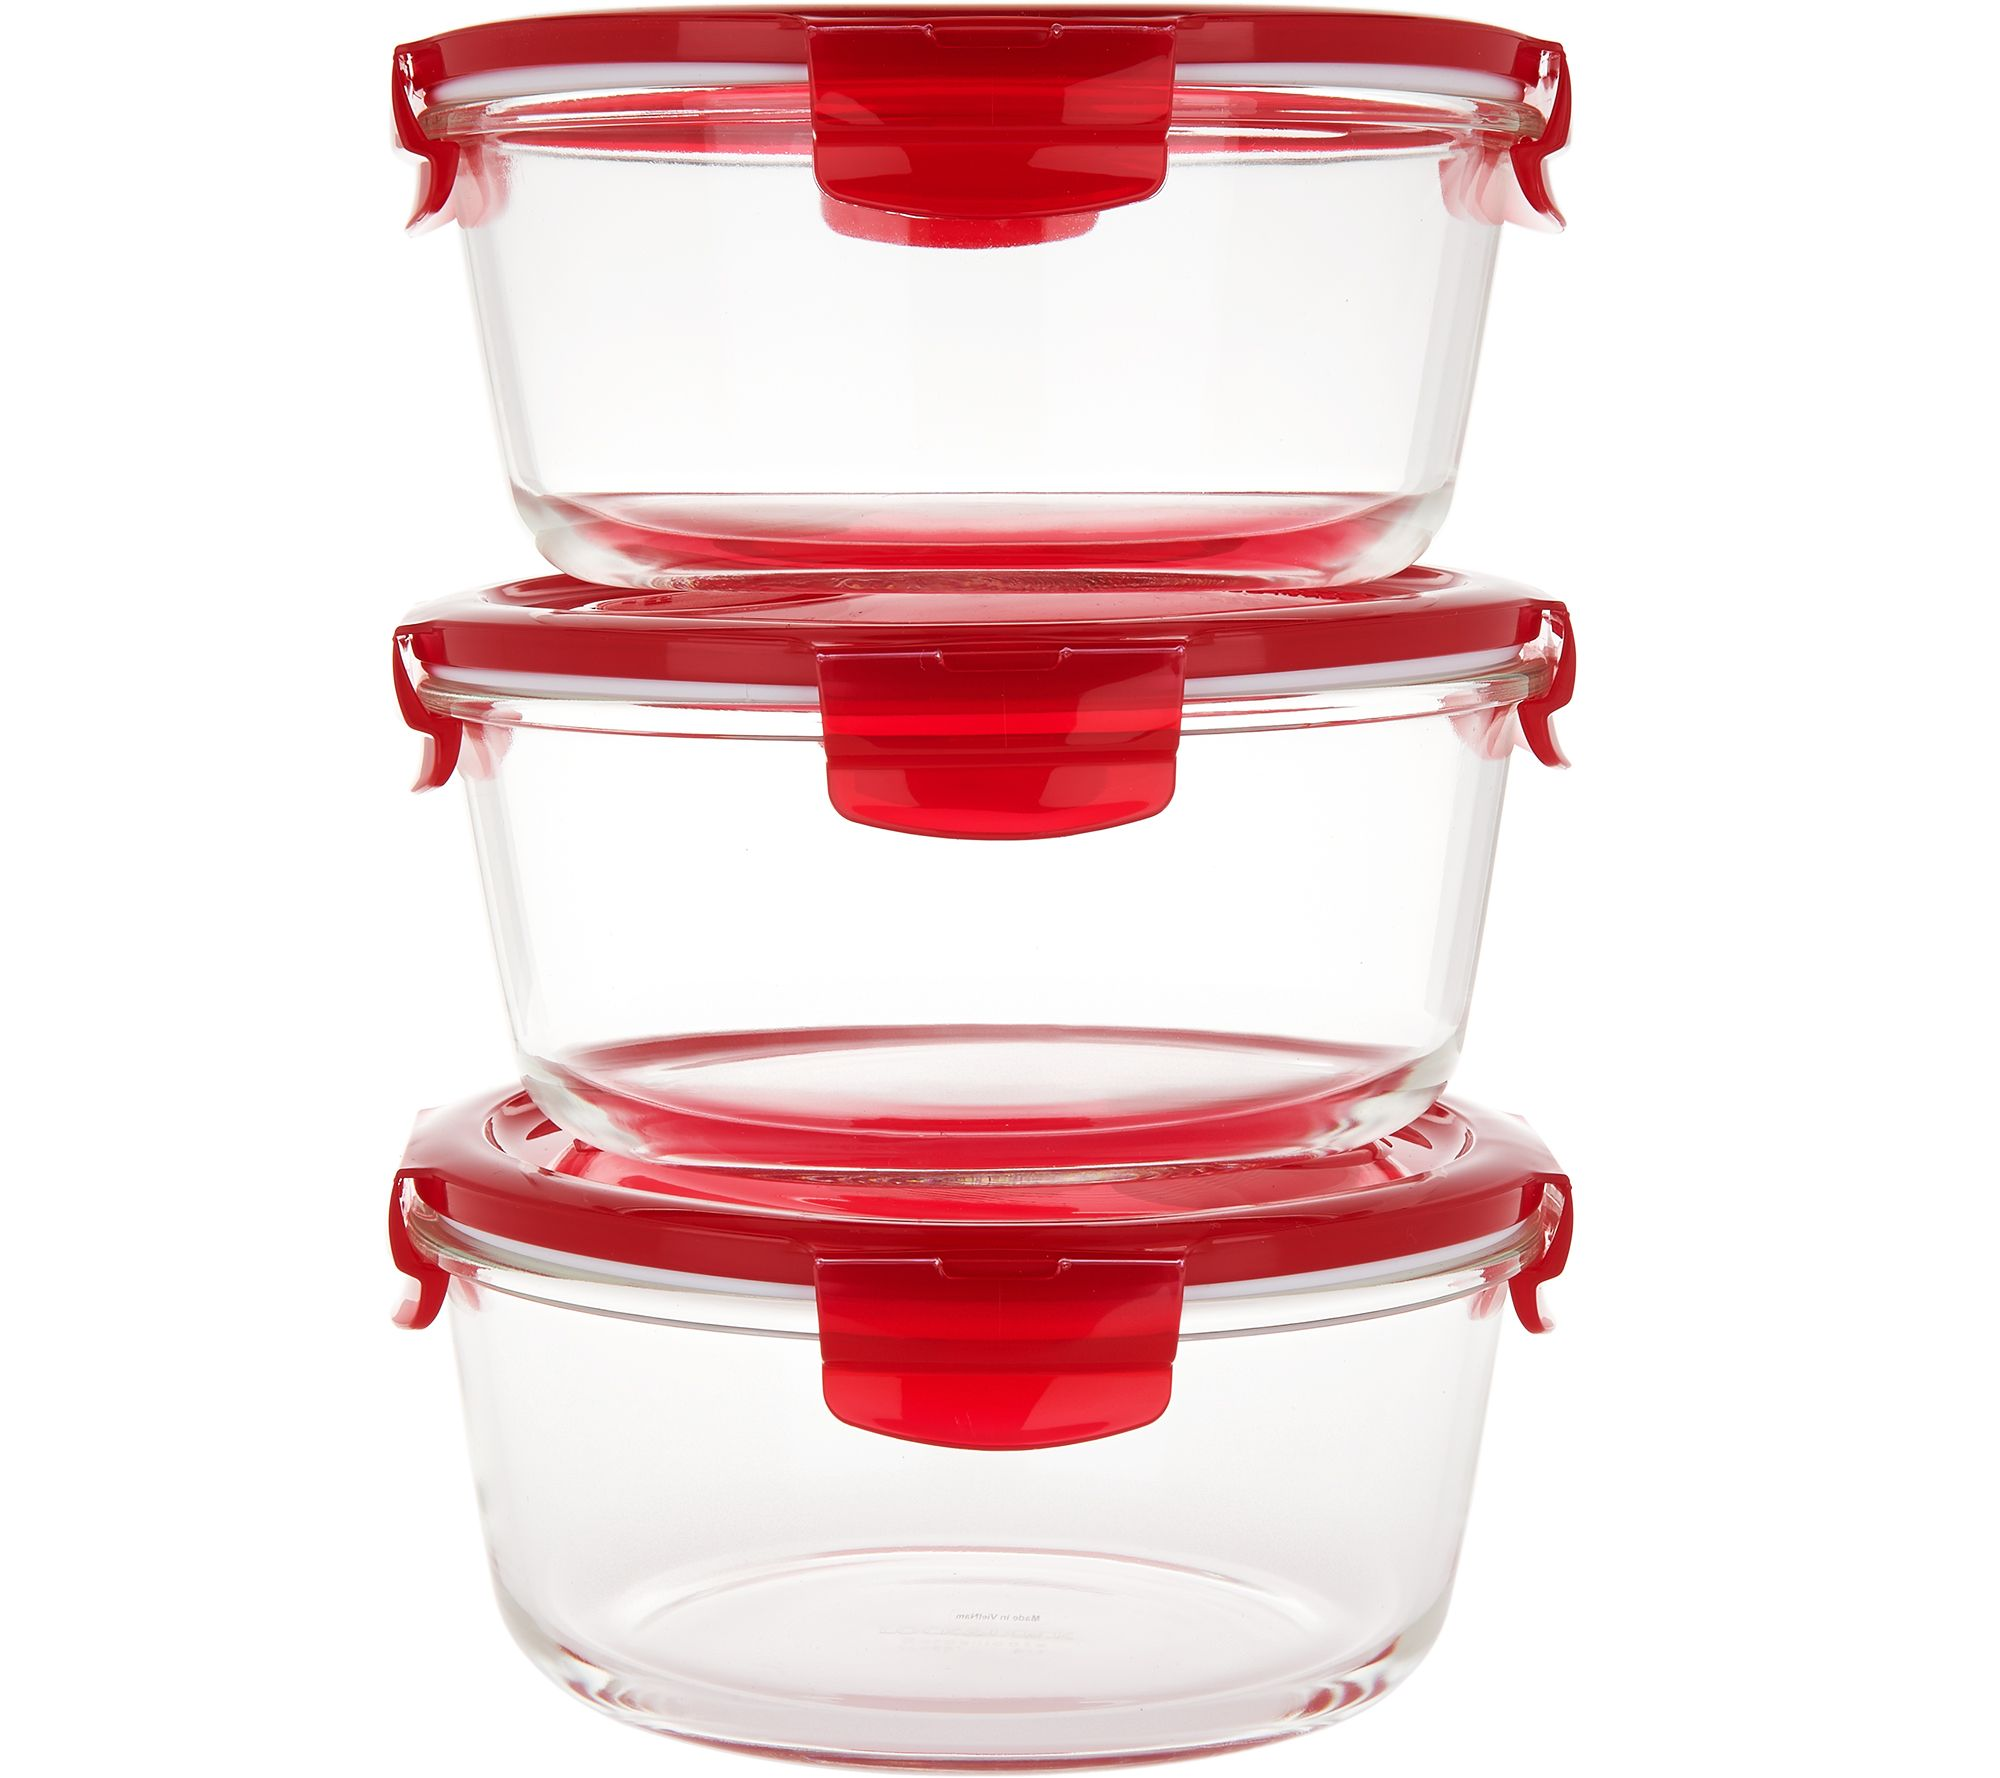 Lock Amp Lock Set Of 3 Vented Glass Bowls Page 1 Qvc Com